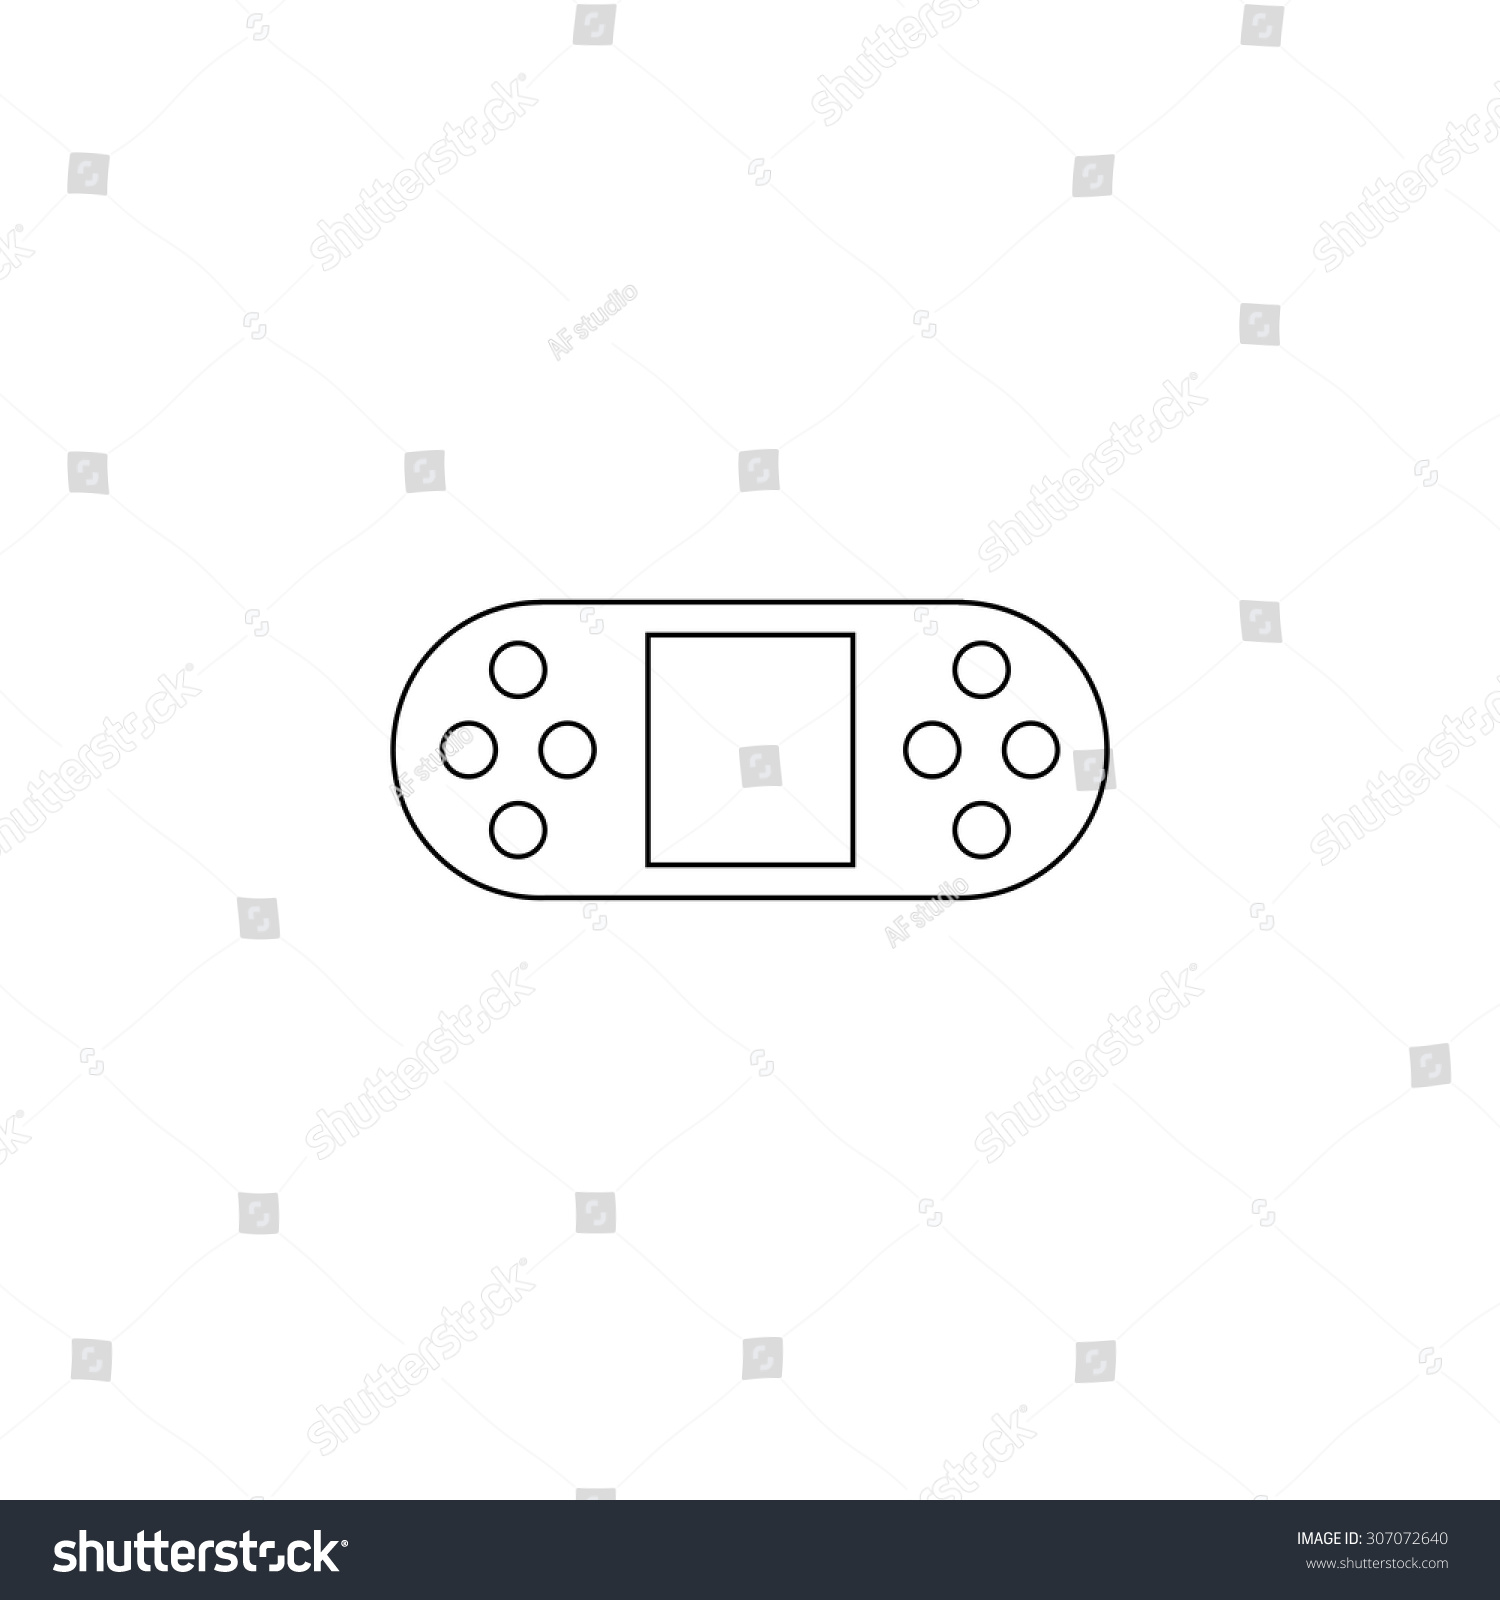 Portable Video Game Console Outline Simple Flat Icon Isolated On - Video game outline